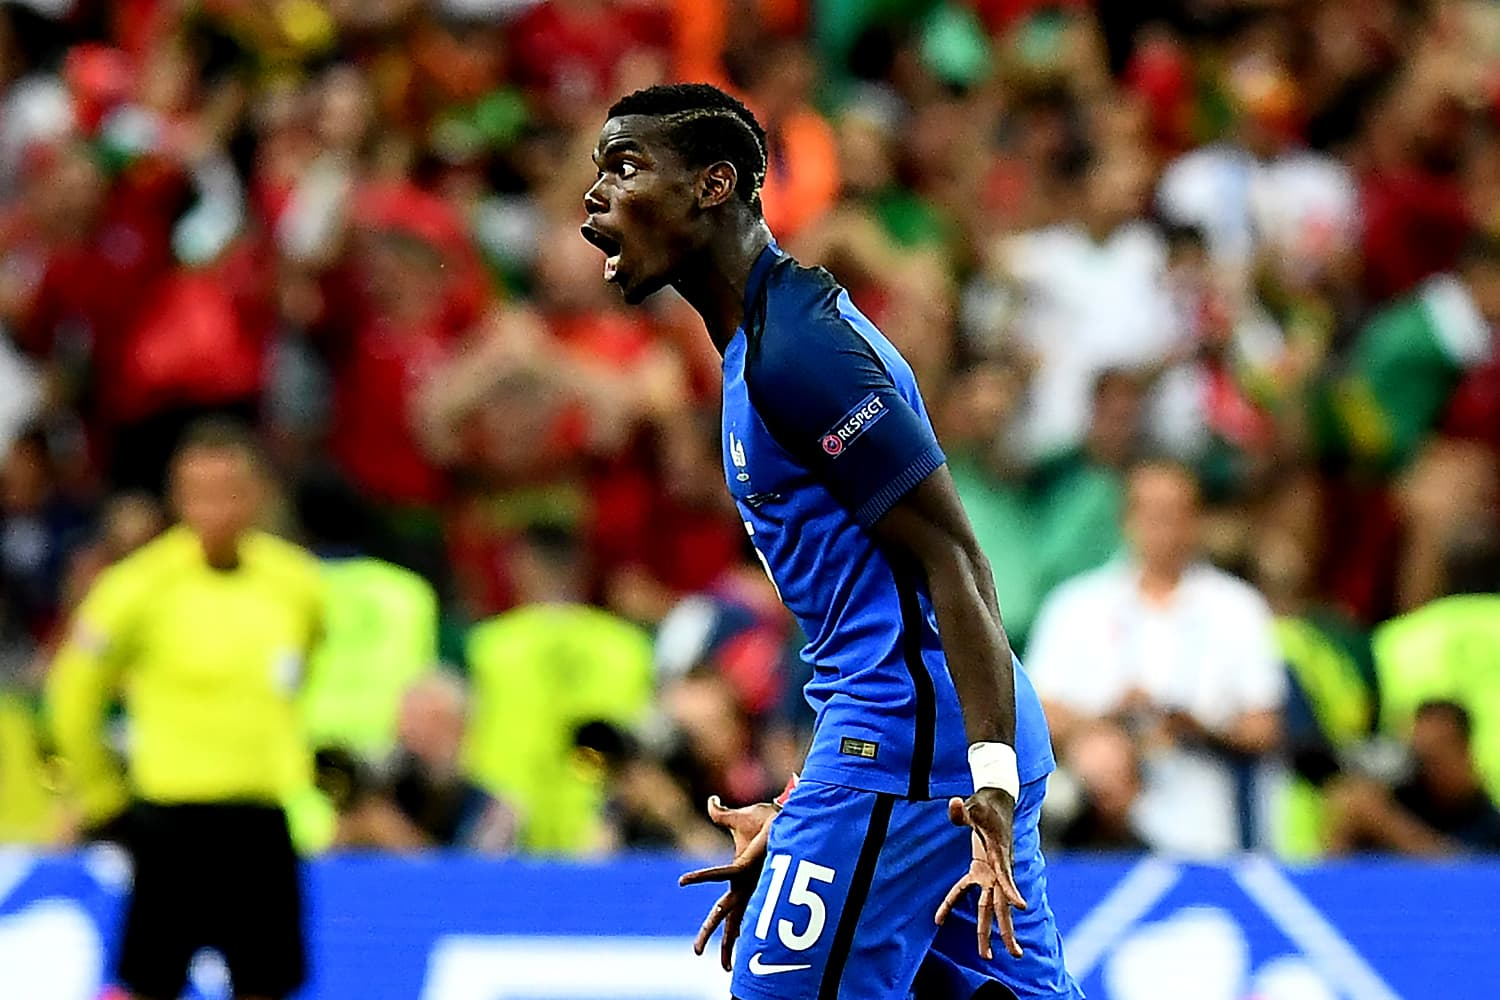 Paul Pogba reacts when the going gets tough for France in the last minutes of the match. — AFP